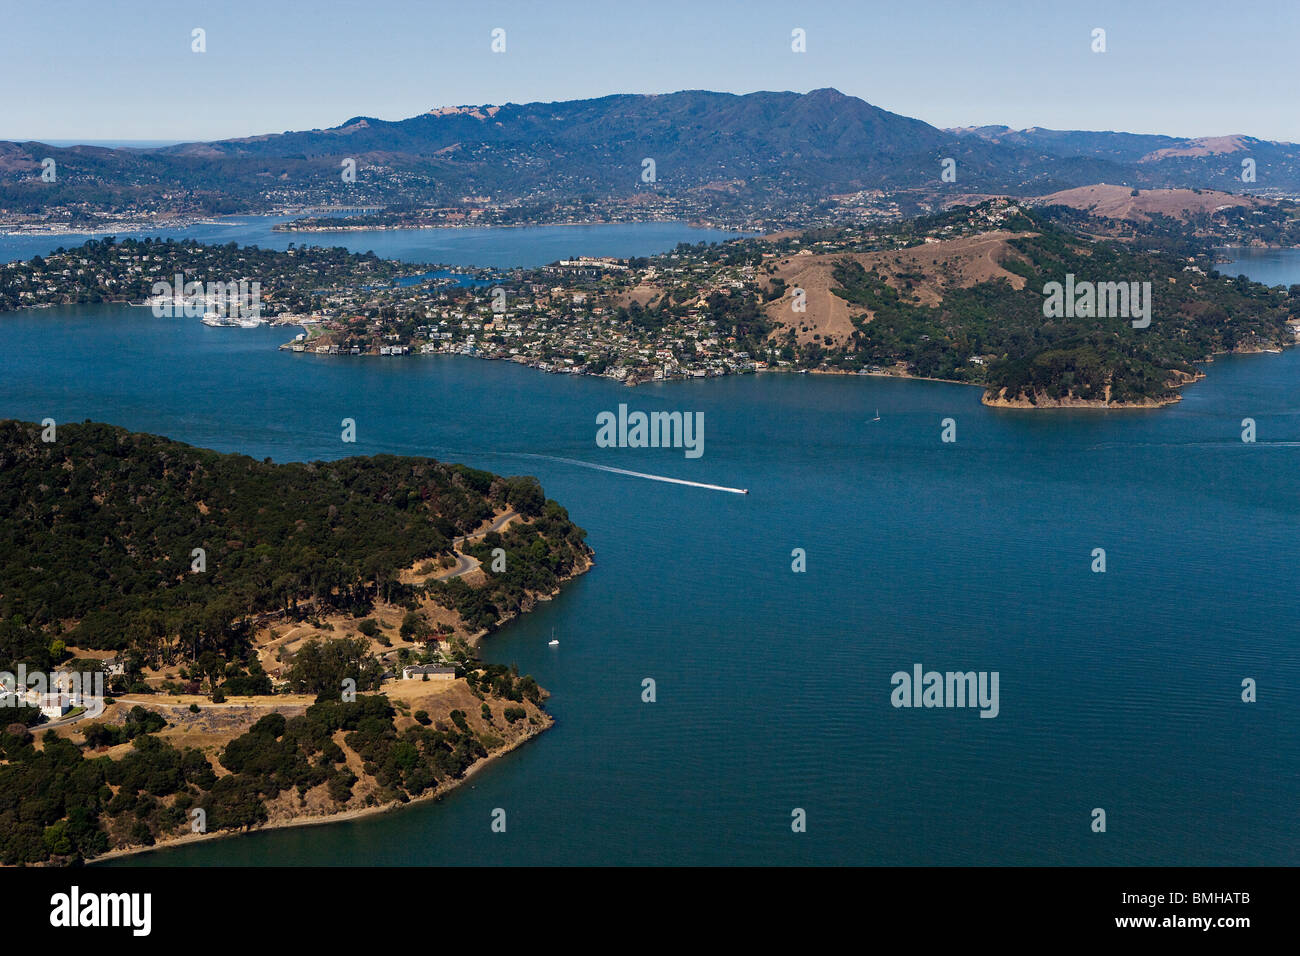 Vista aérea sobre Raccoon rectas San Francisco Bay Tiburon Angel Island Monte Tamalpais Marin County California Imagen De Stock